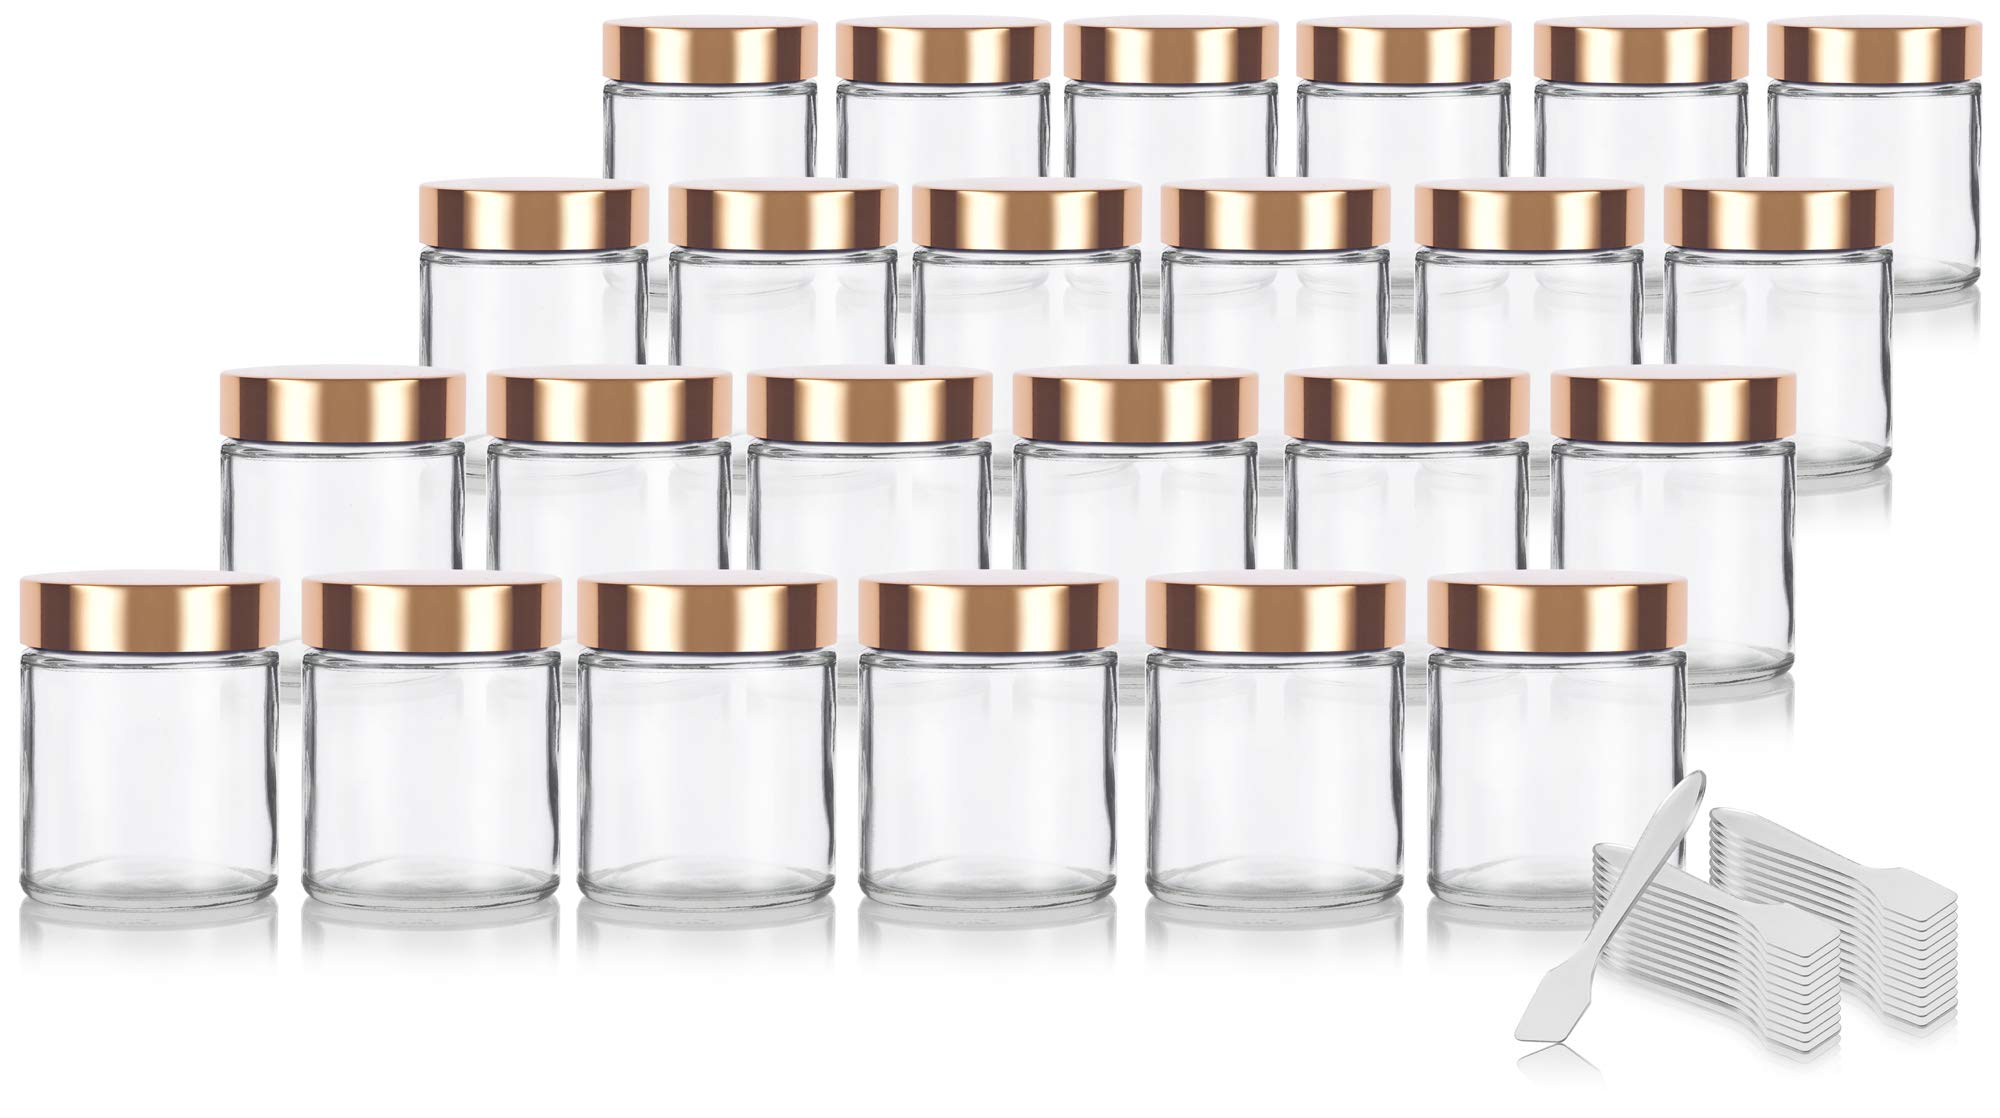 Clear Thick Glass Straight Sided Jar with Gold Metal Overshell Lid - 4 oz / 120 ml (24 pack) + Spatulas by JUVITUS